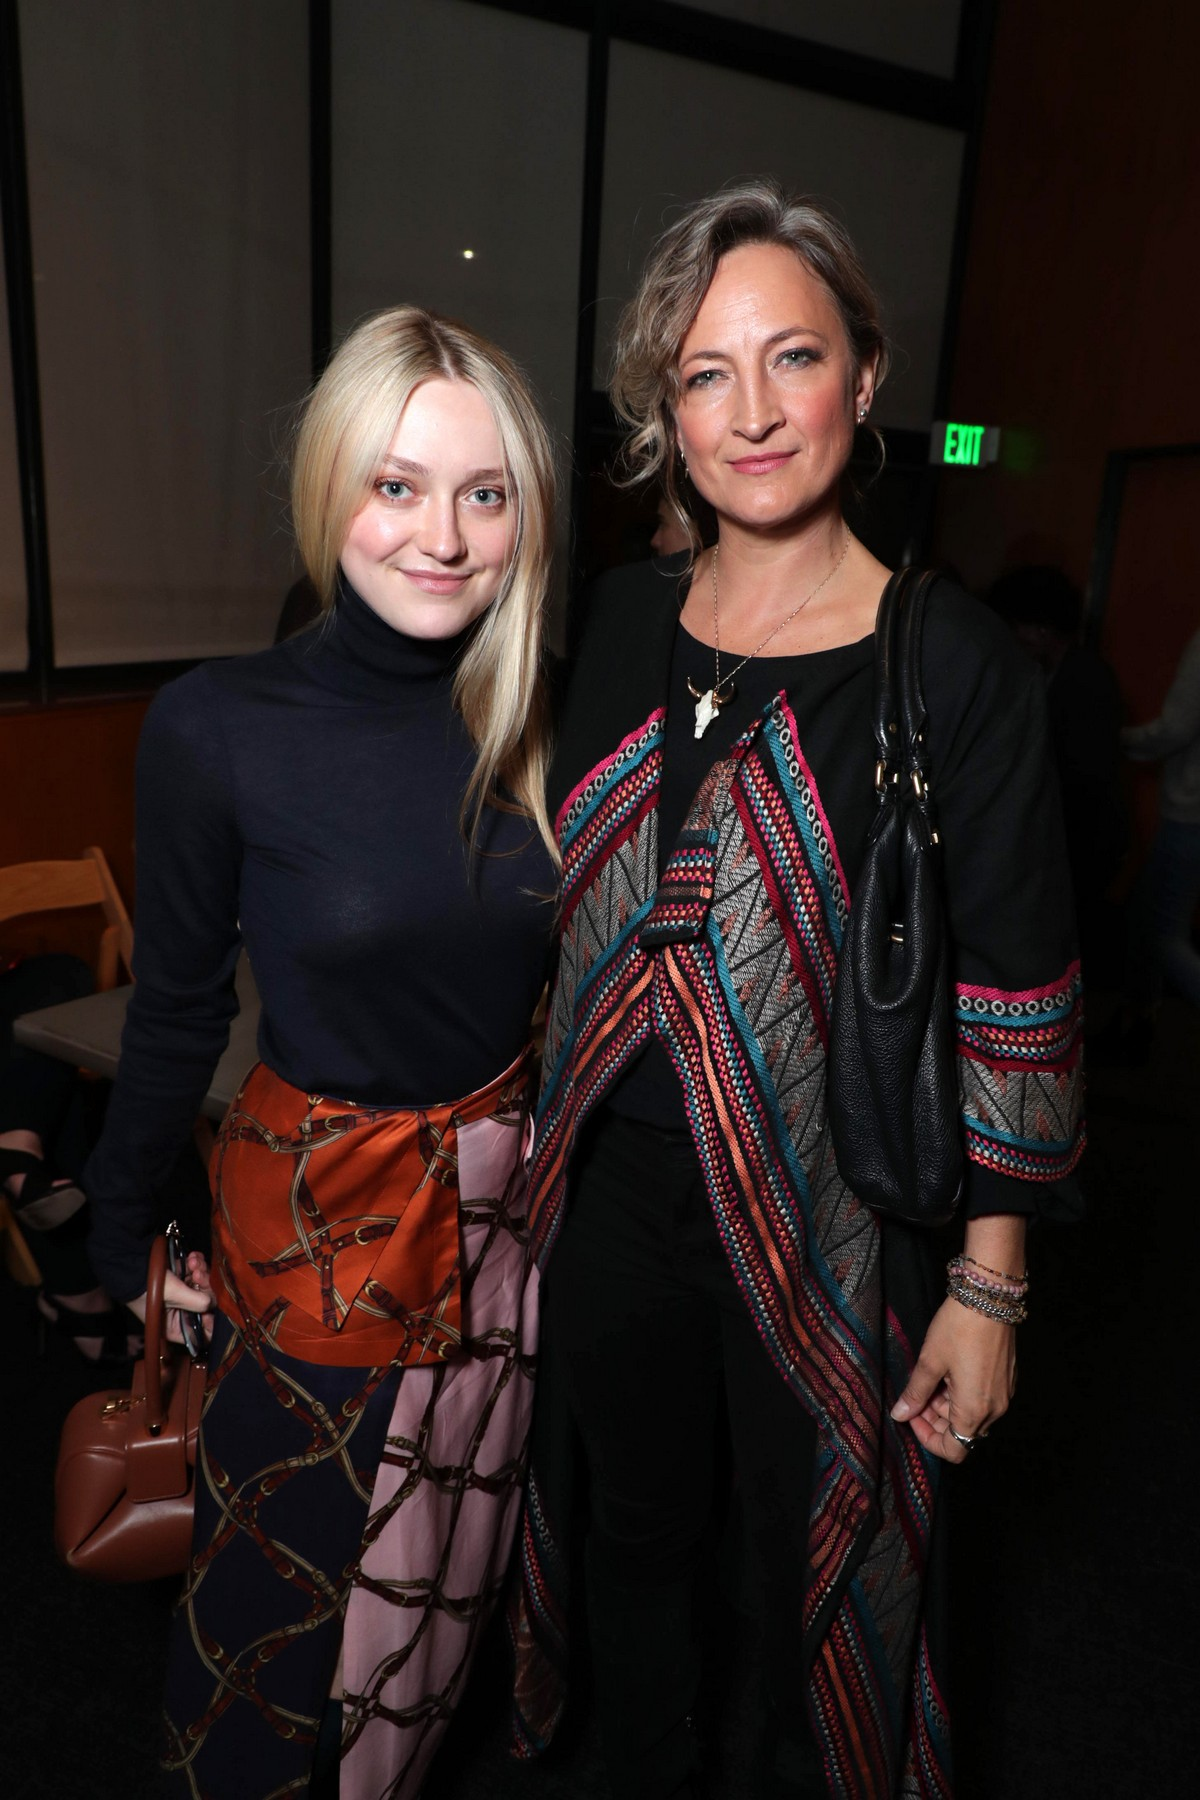 Dakota Fanning attends 'Once Upon a Time in Hollywood' Special Screening in Los Angeles 2019/11/21 3